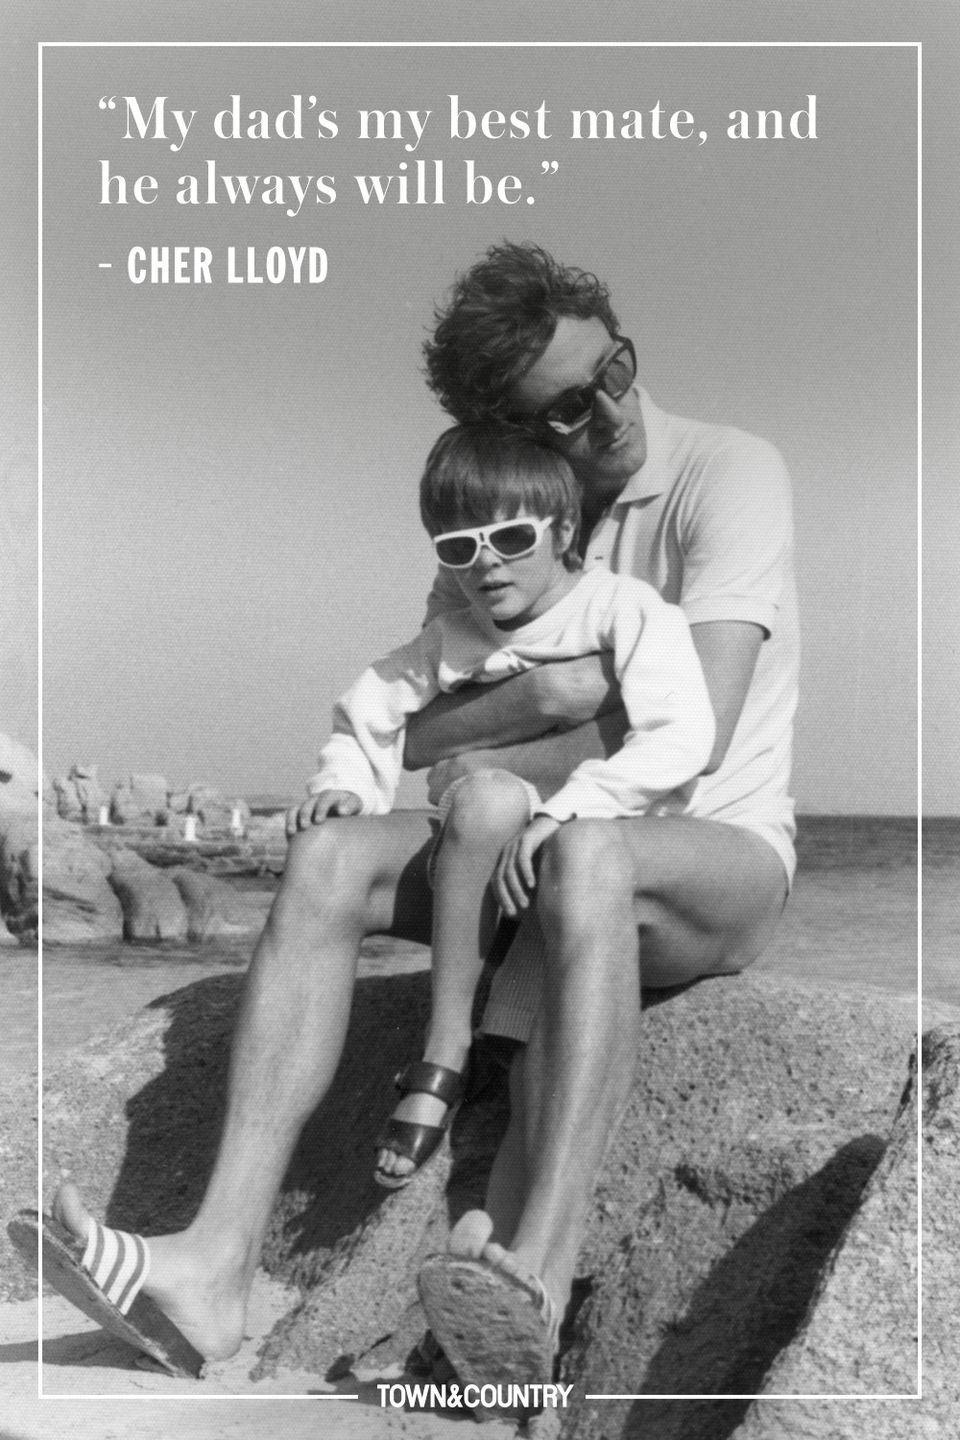 "<p>""My dad's my best mate, and he always will be.""</p><p> - Cher Lloyd</p>"